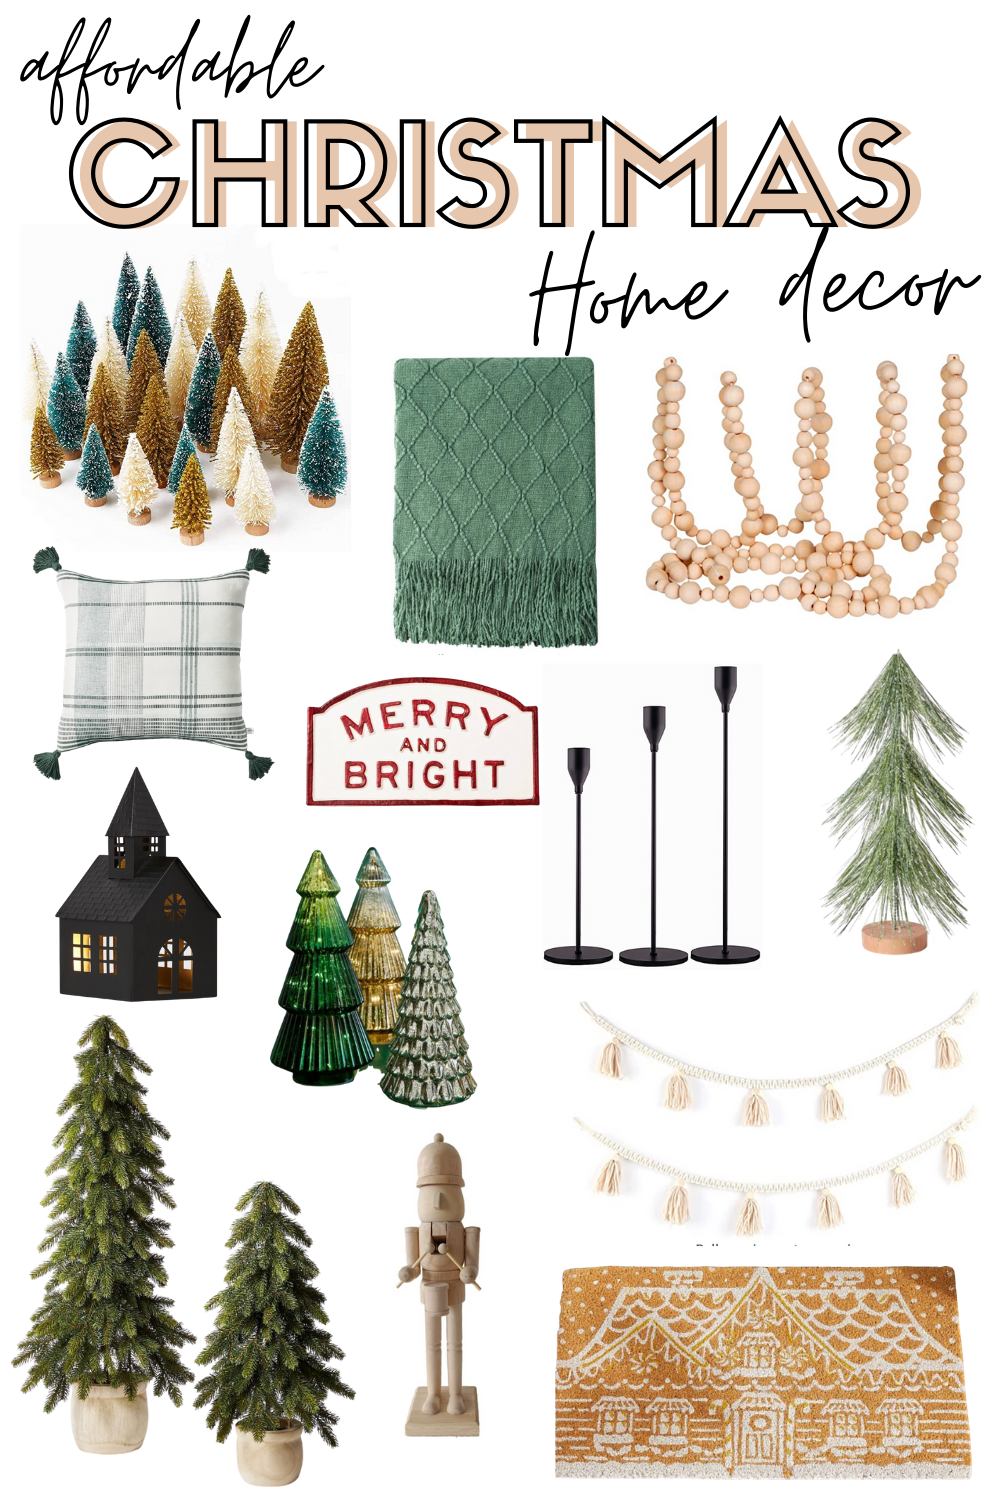 Affordable Christmas Decor - Neutral Christmas Home Decor